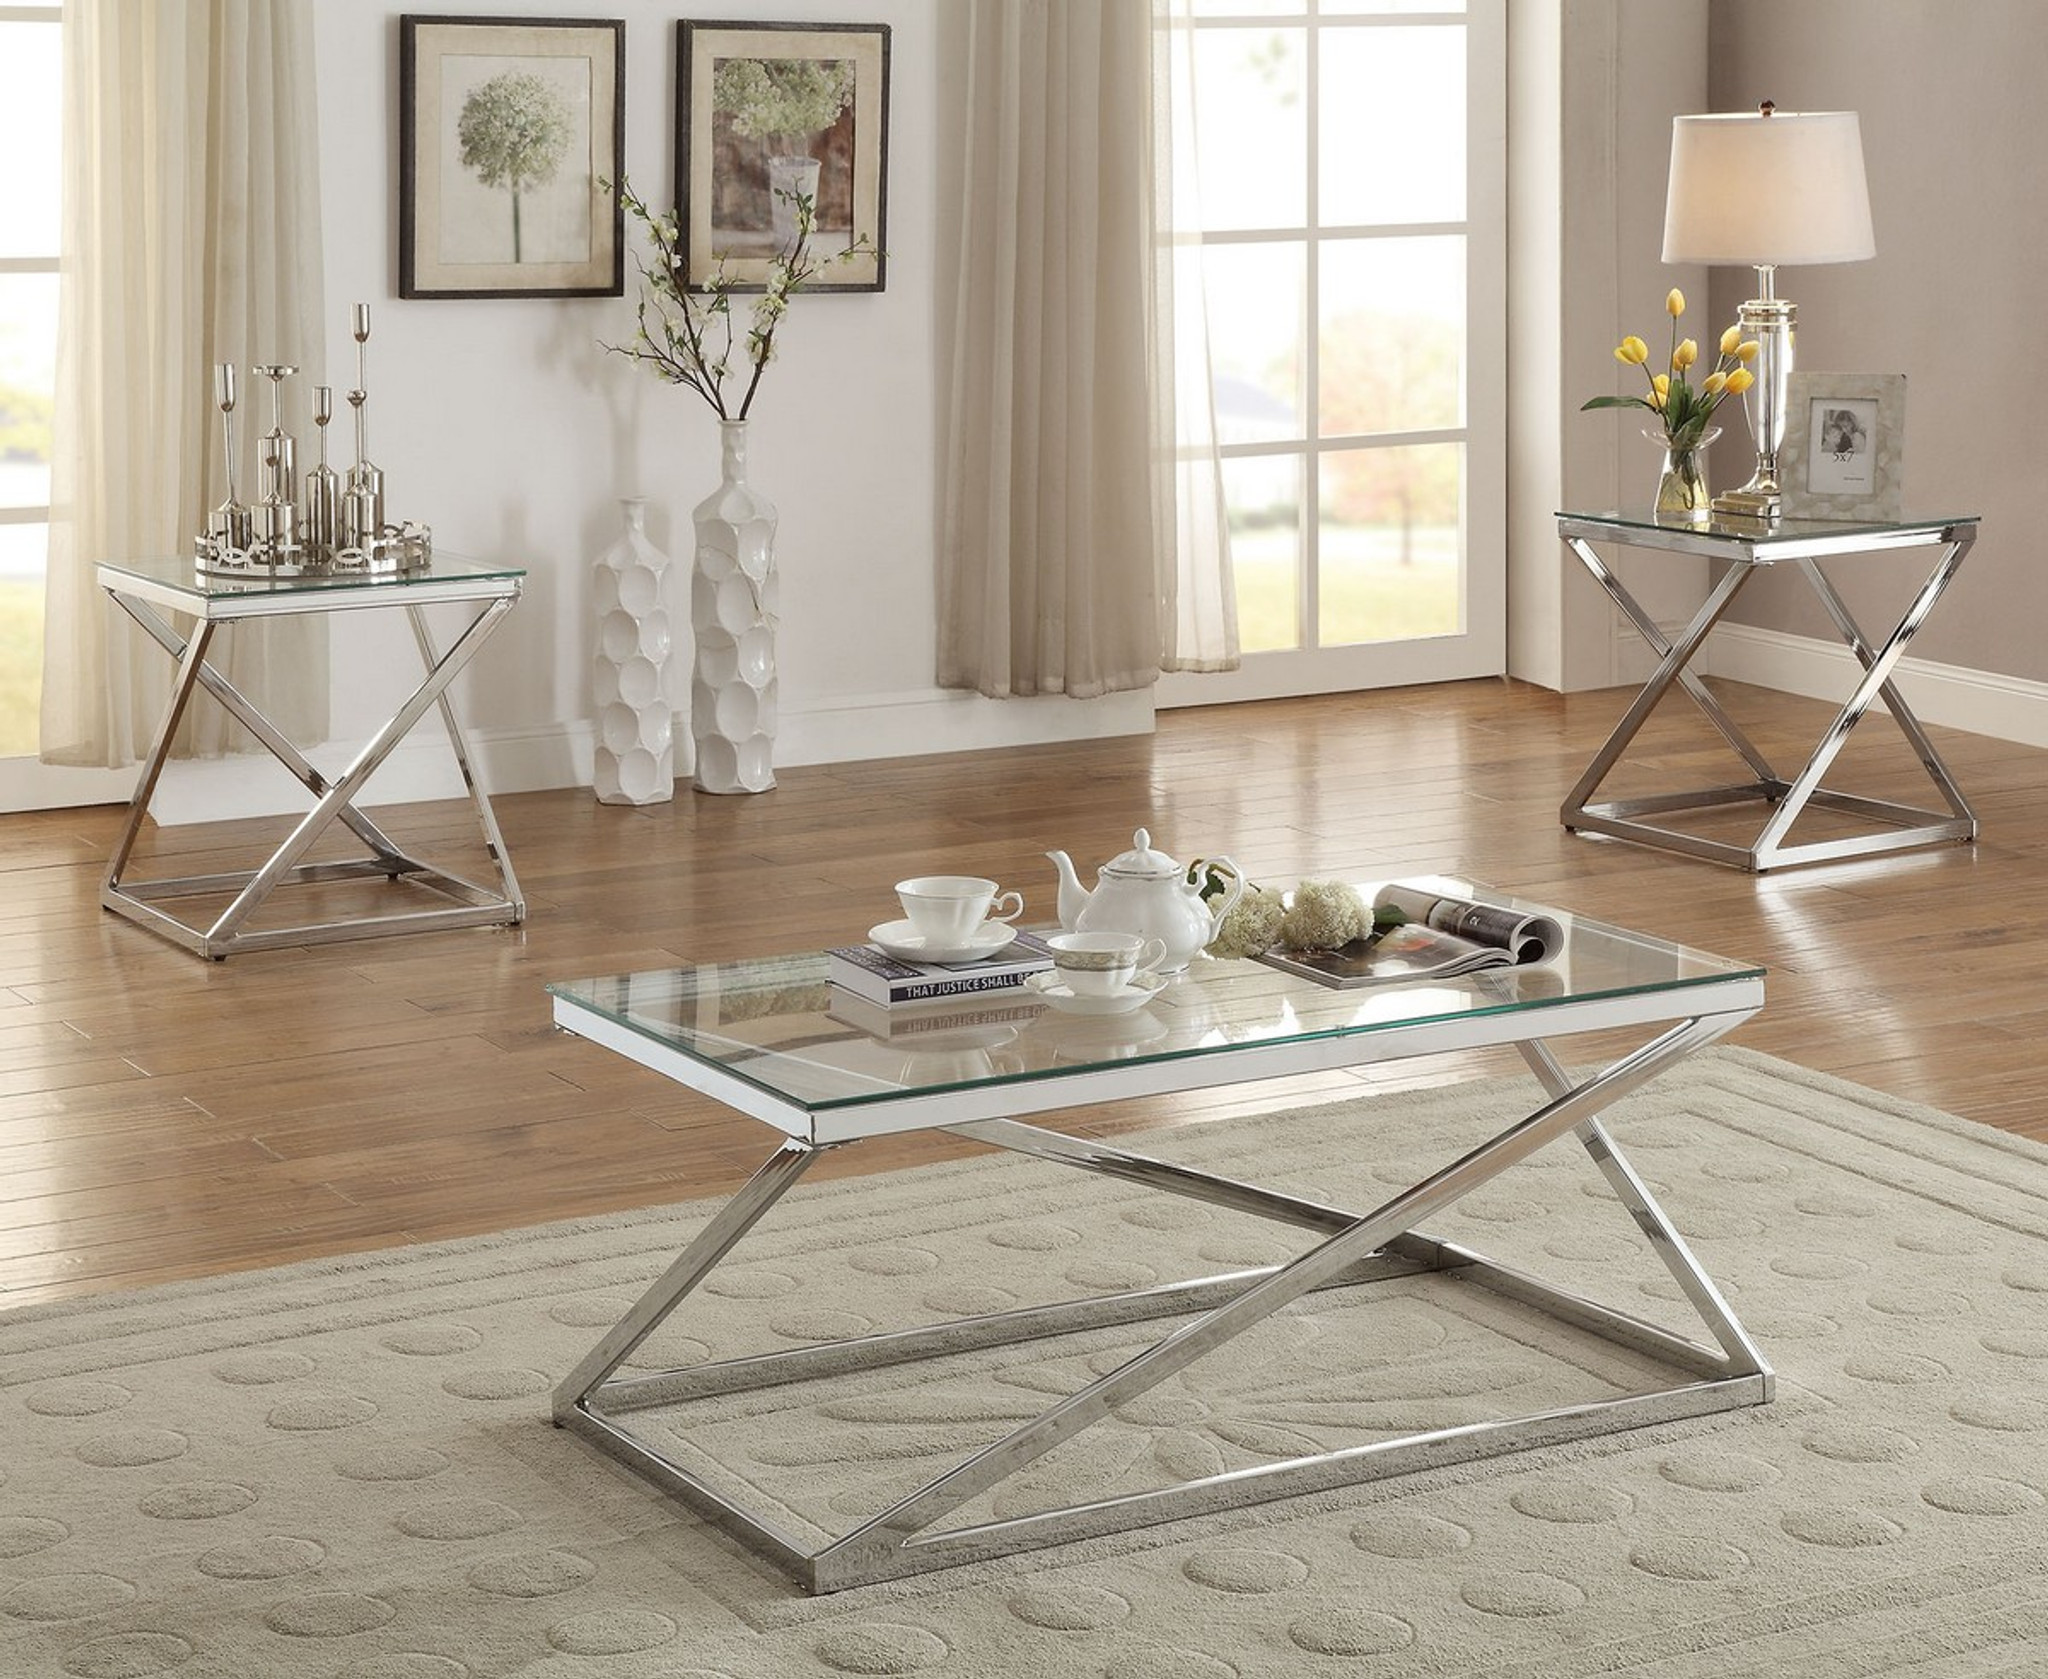 Kassa Mall Home Furniture F3114 3pc Tempered Glass Top Coffee Table End Table Set In Silver Chrome Finish